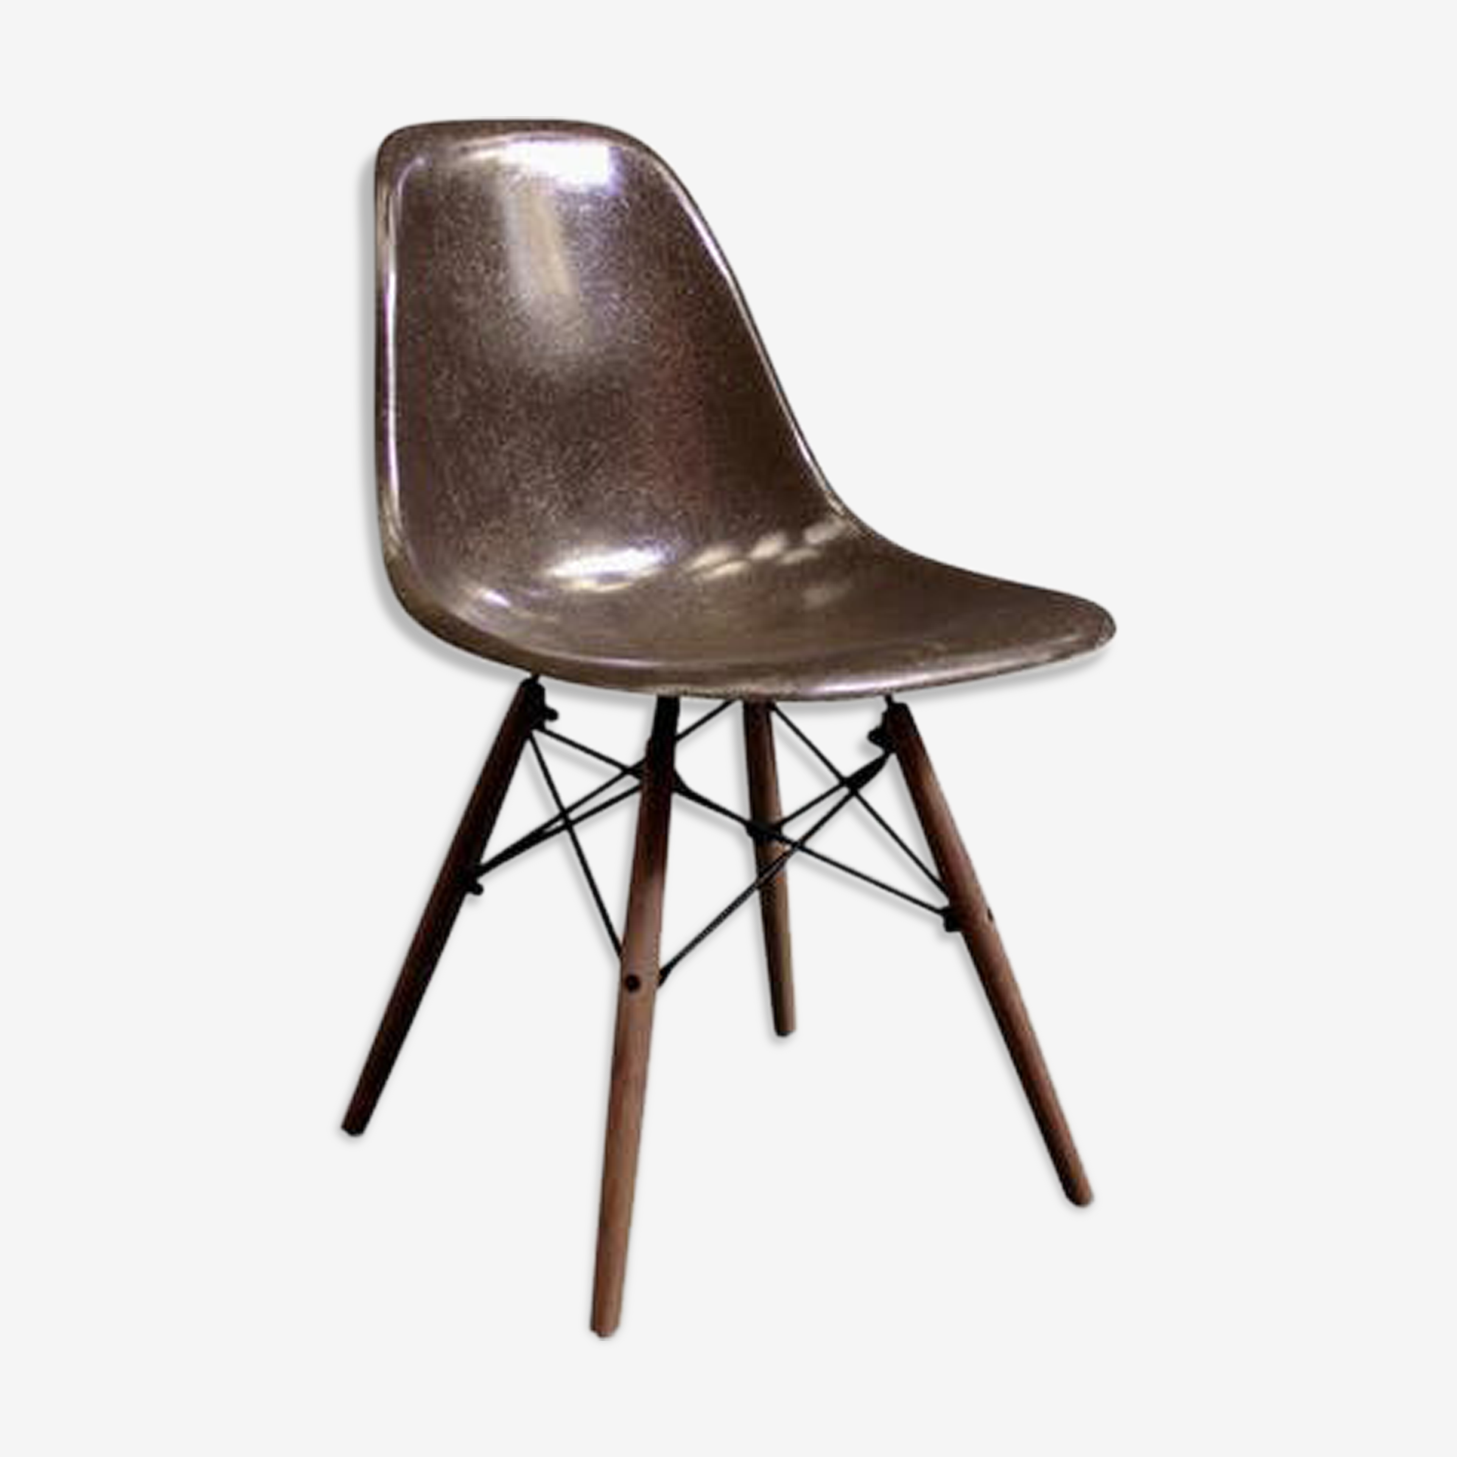 DSW chair by CHarles and Ray Eames for Herman Miller 1970 edition